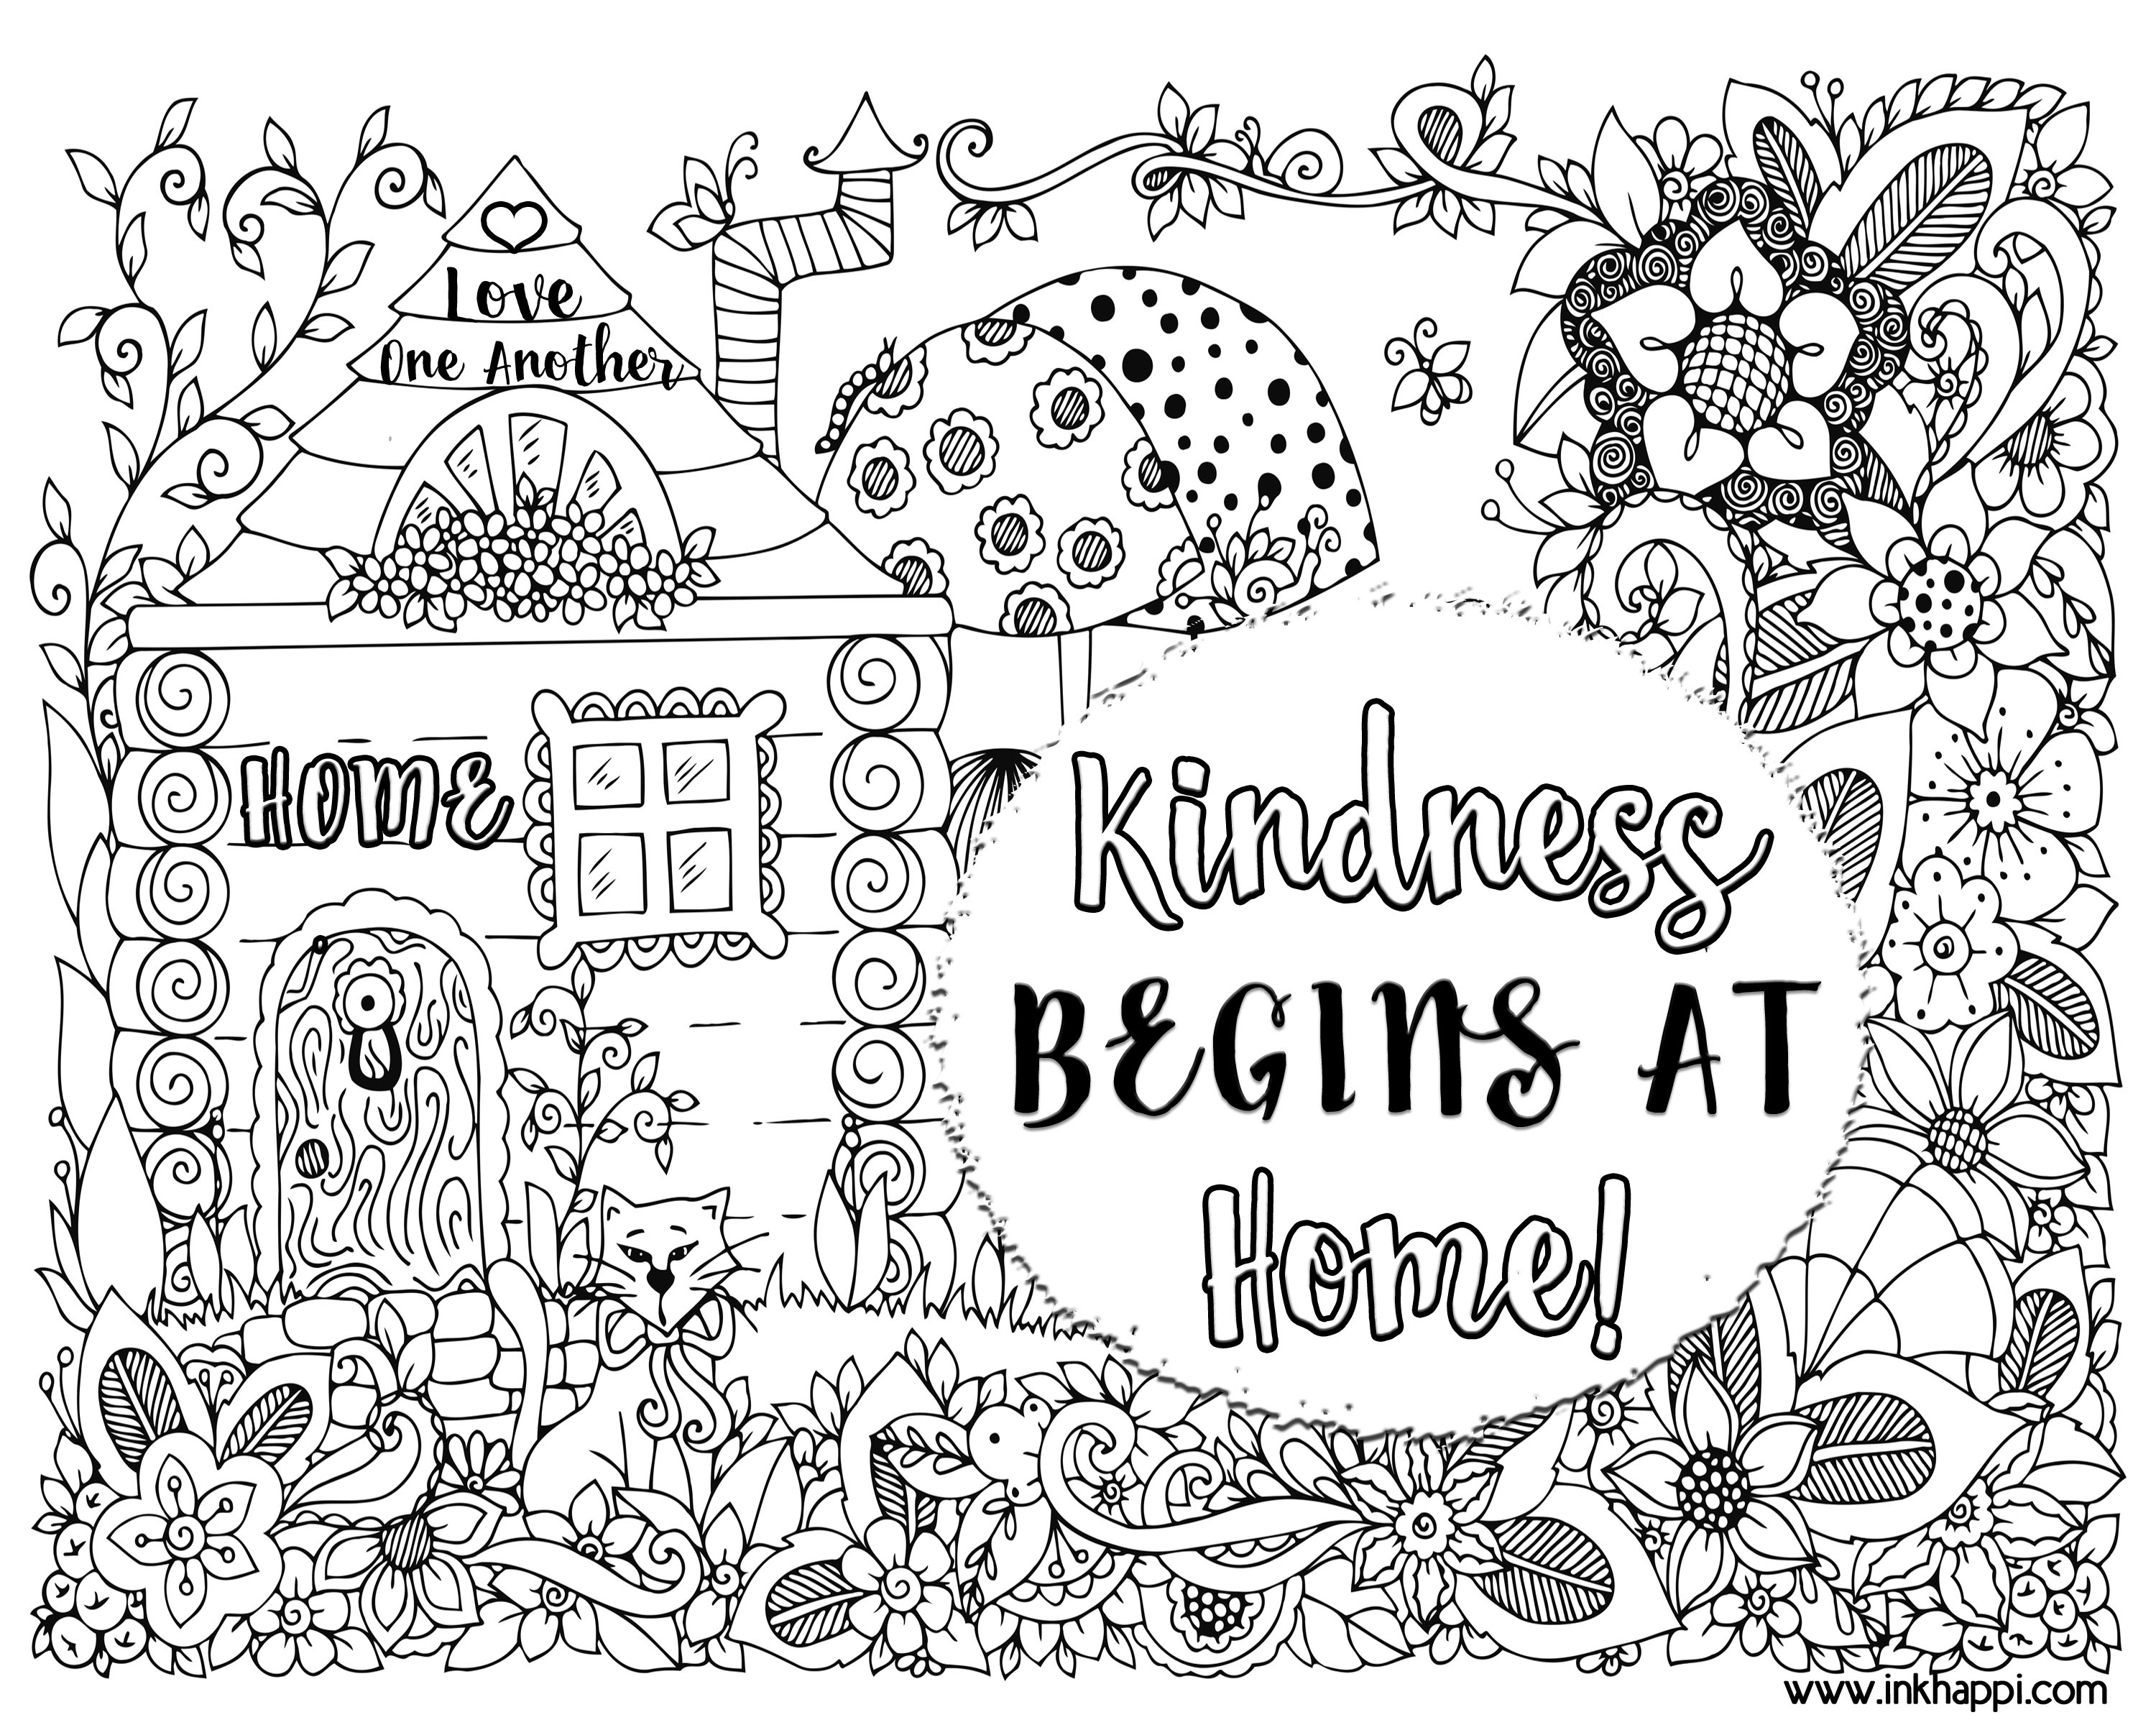 Kindness Begins At Home A Coloring Page And A Message